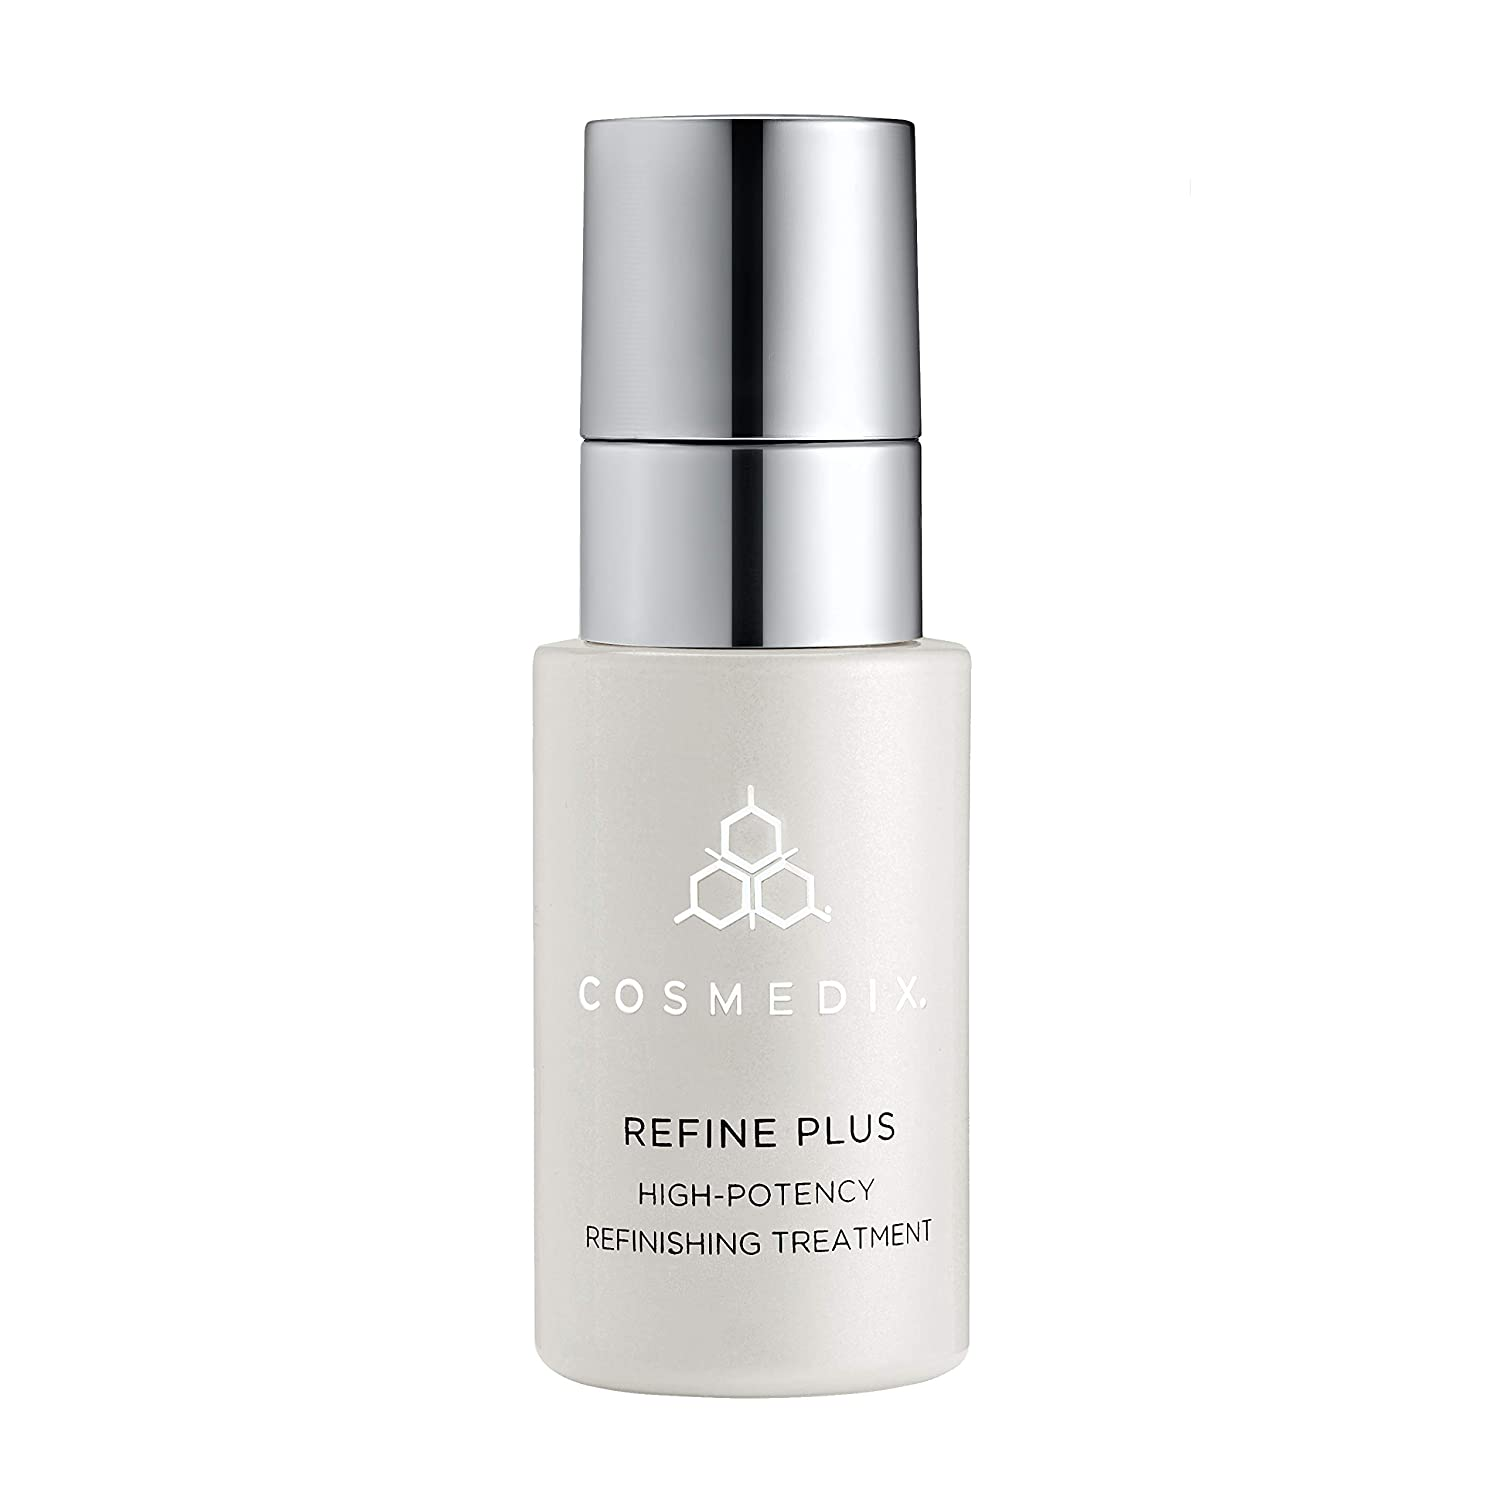 COSMEDIX Refine Plus High-Potency Refininshing Treatment: Premium Beauty